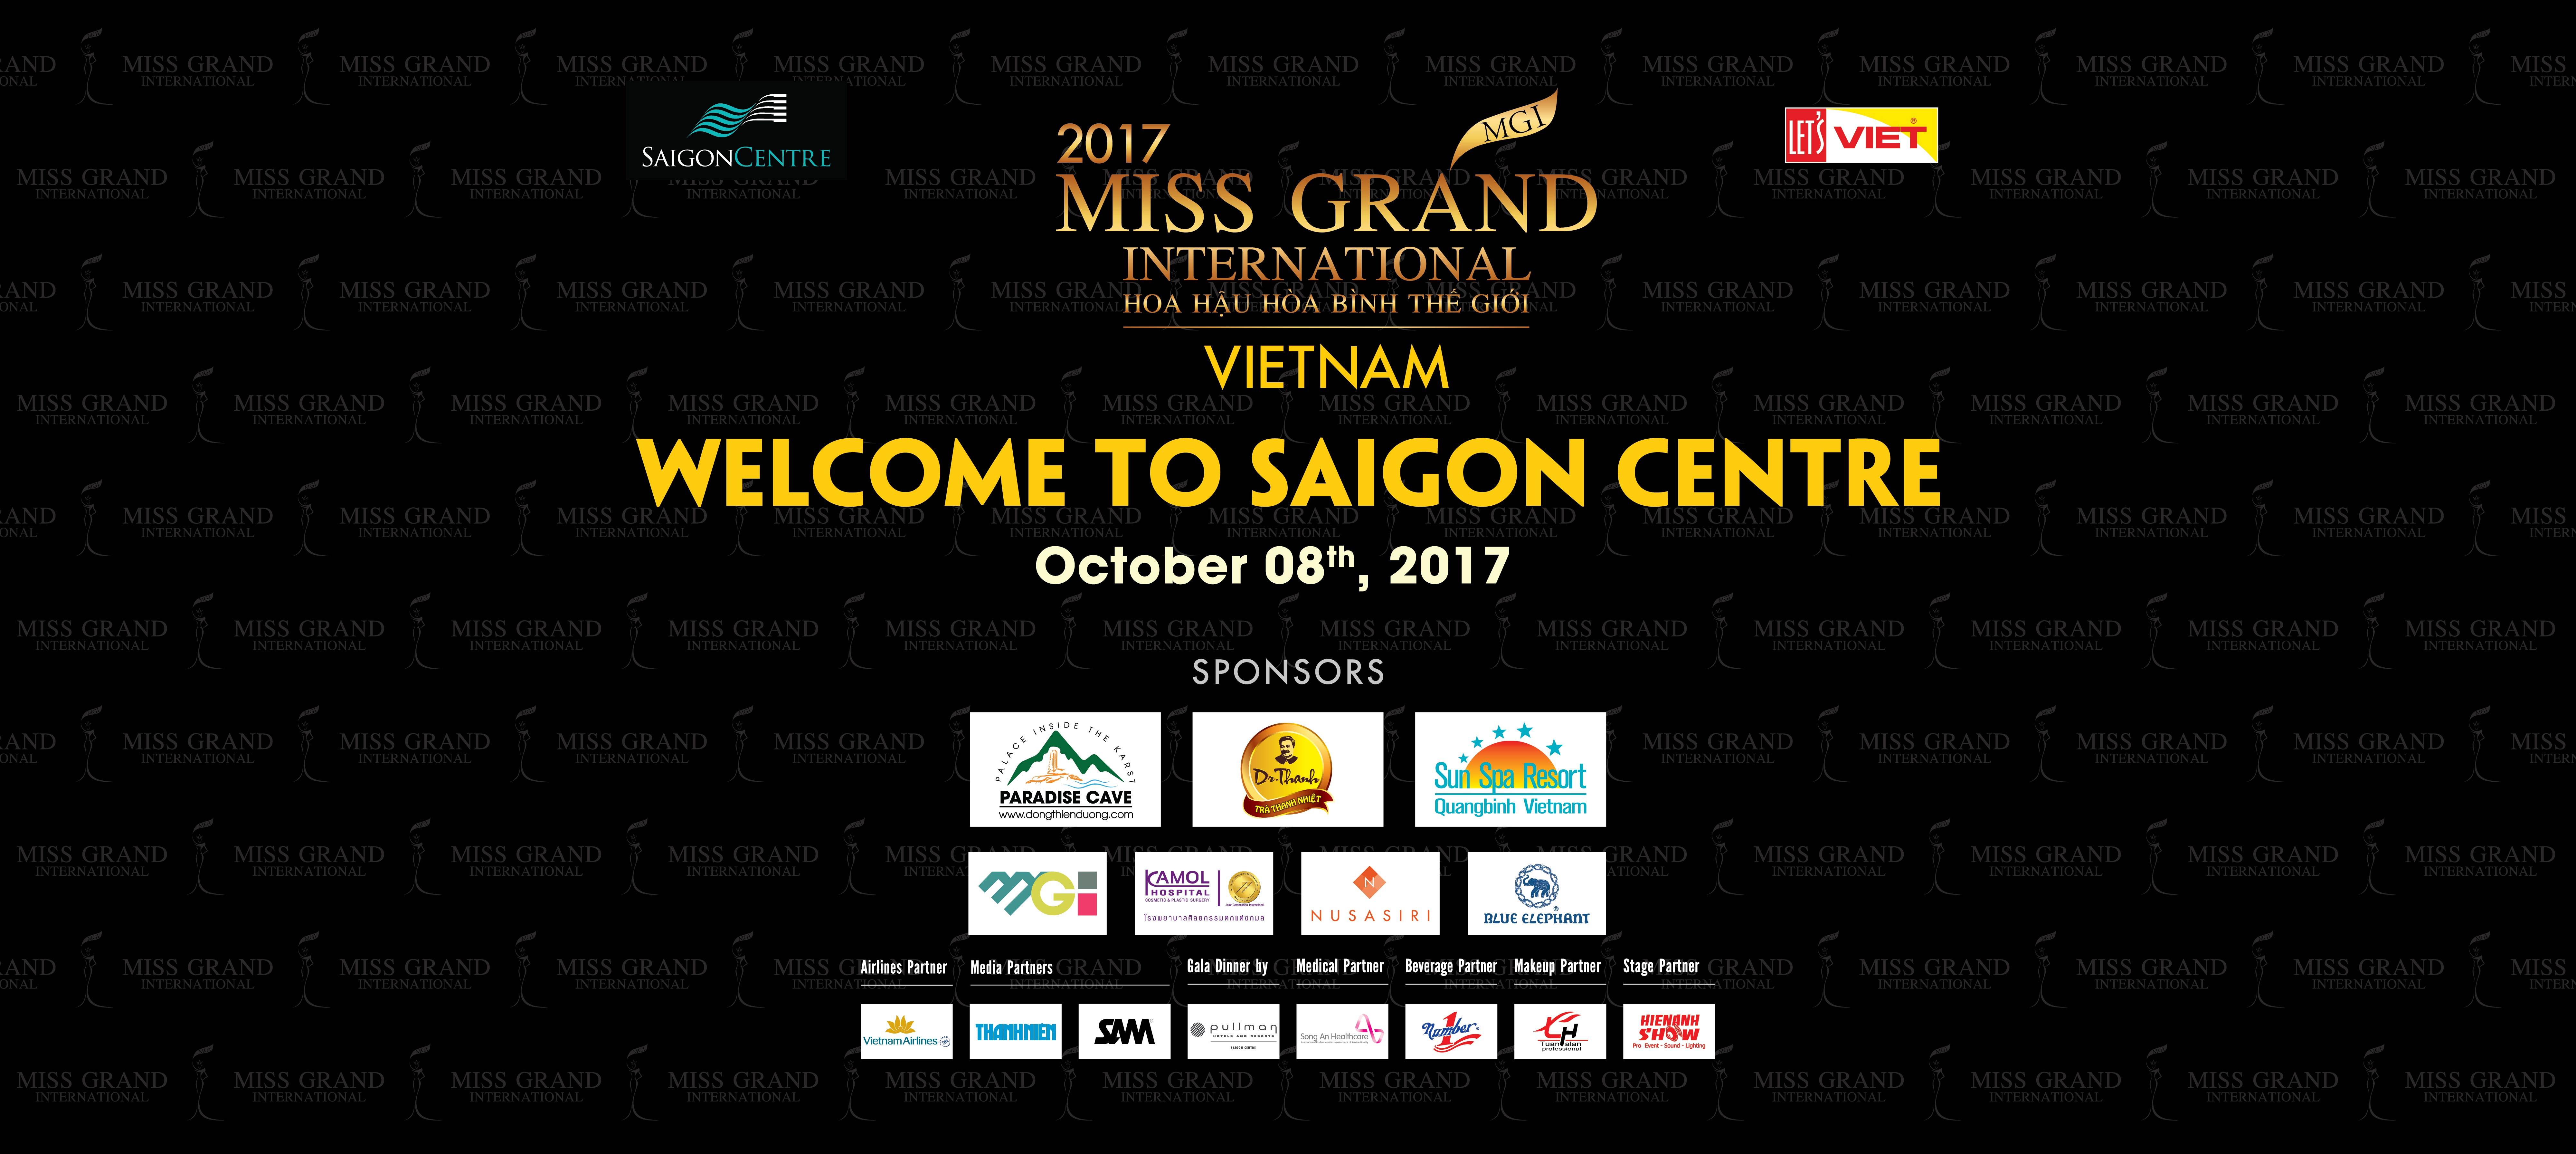 Miss Grand at Saigon Centre